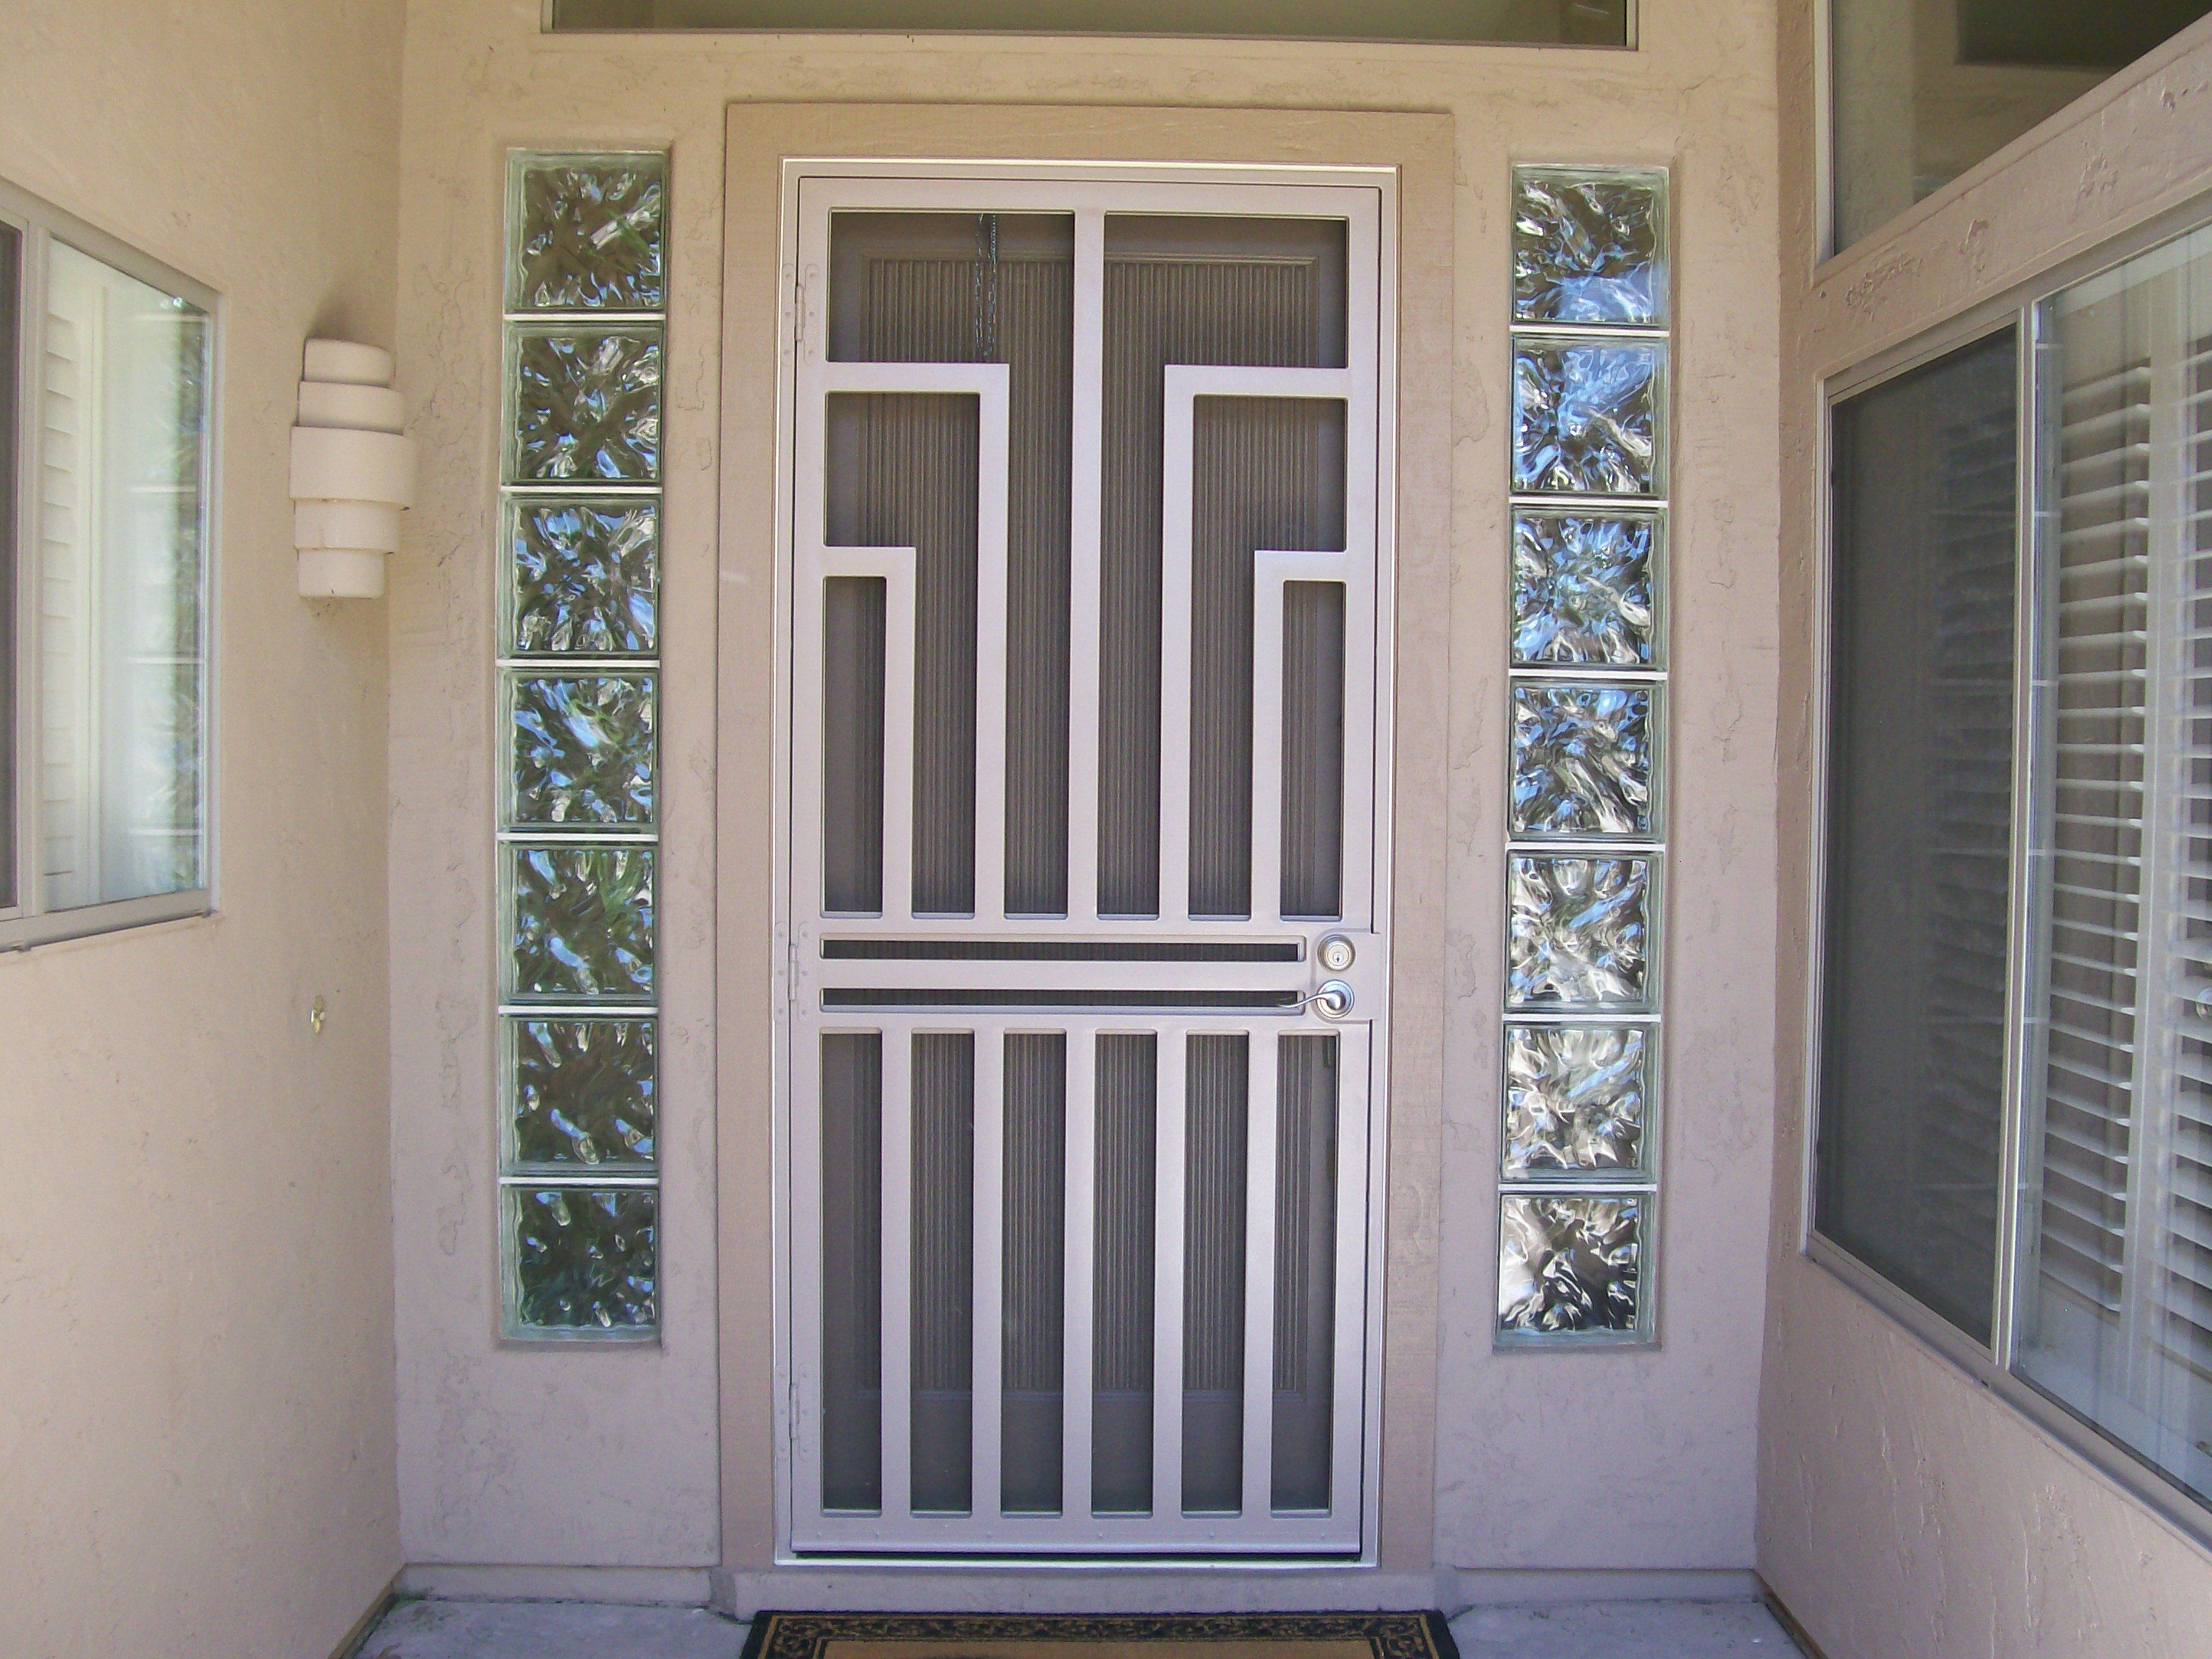 Security Screen Doors And Windows Are World Class Quality